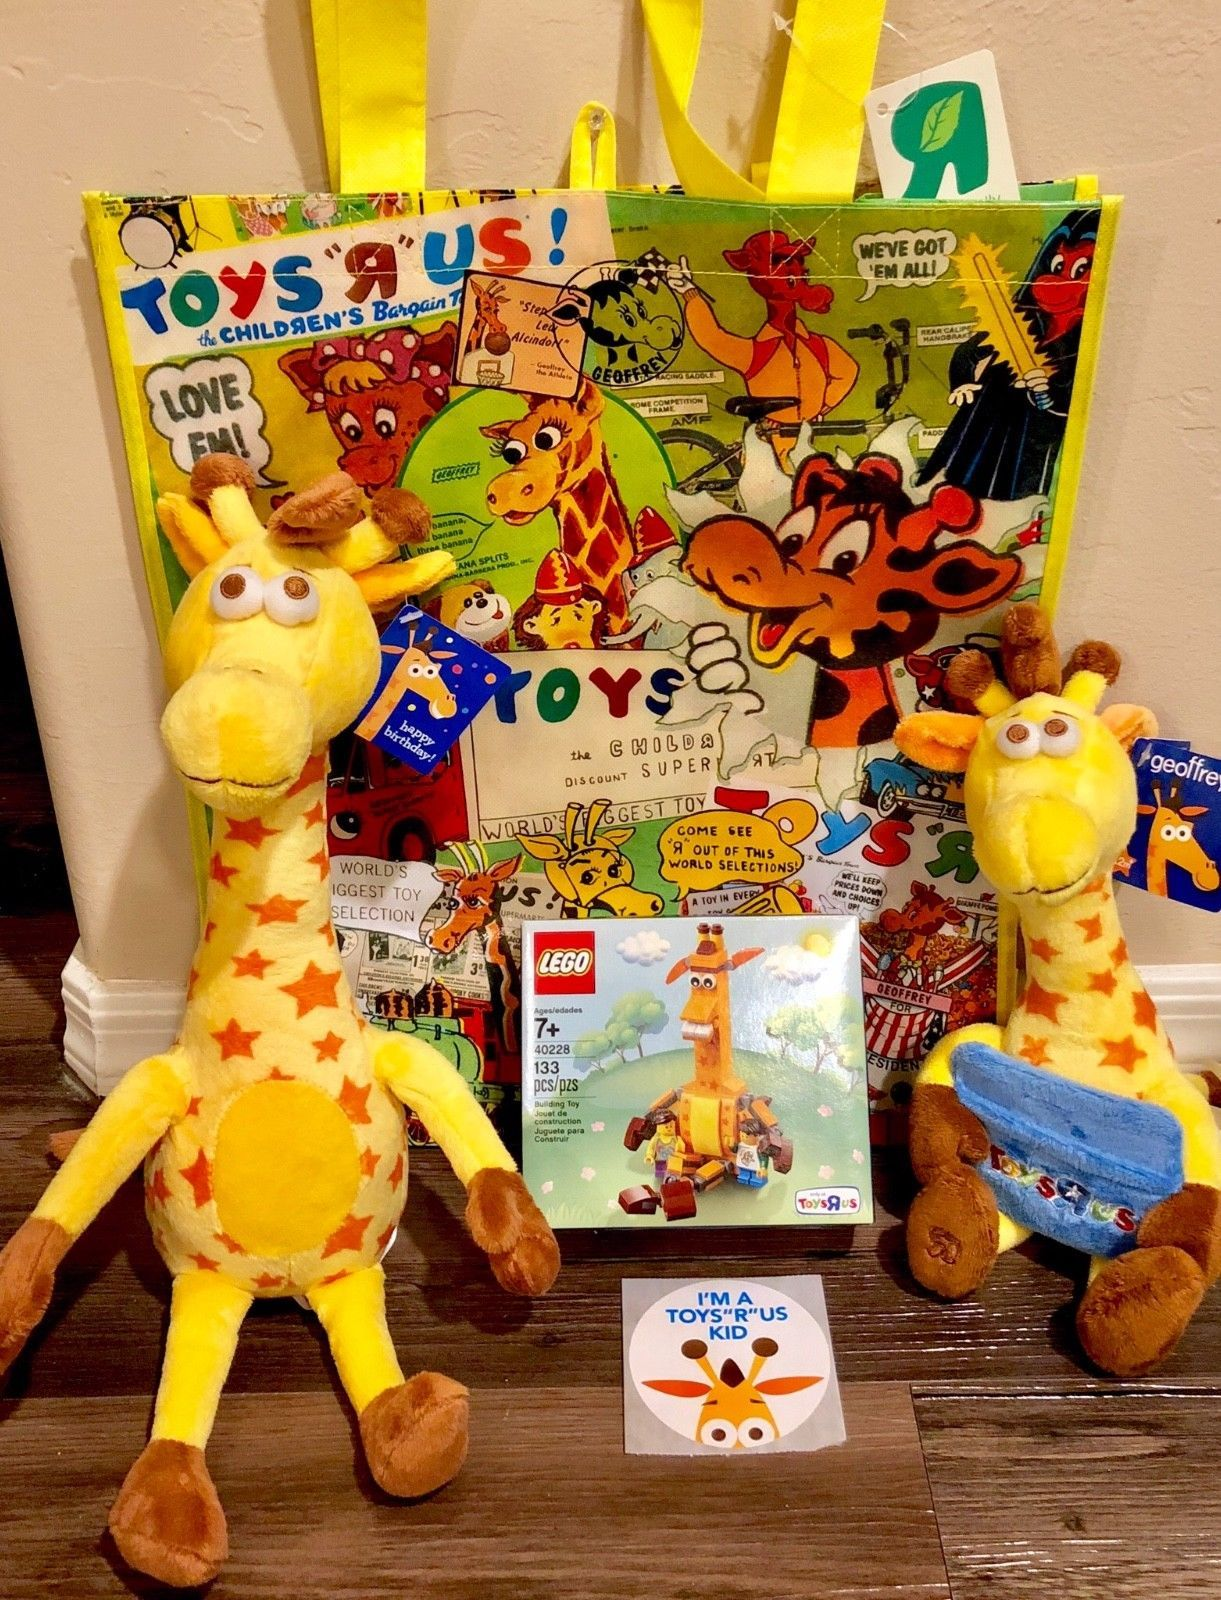 Toys R Us Toysrus Geoffrey Giraffe Lot Lego Birthday Plush Set Bag Sticker Birthday Plush Lego Birthday Lego